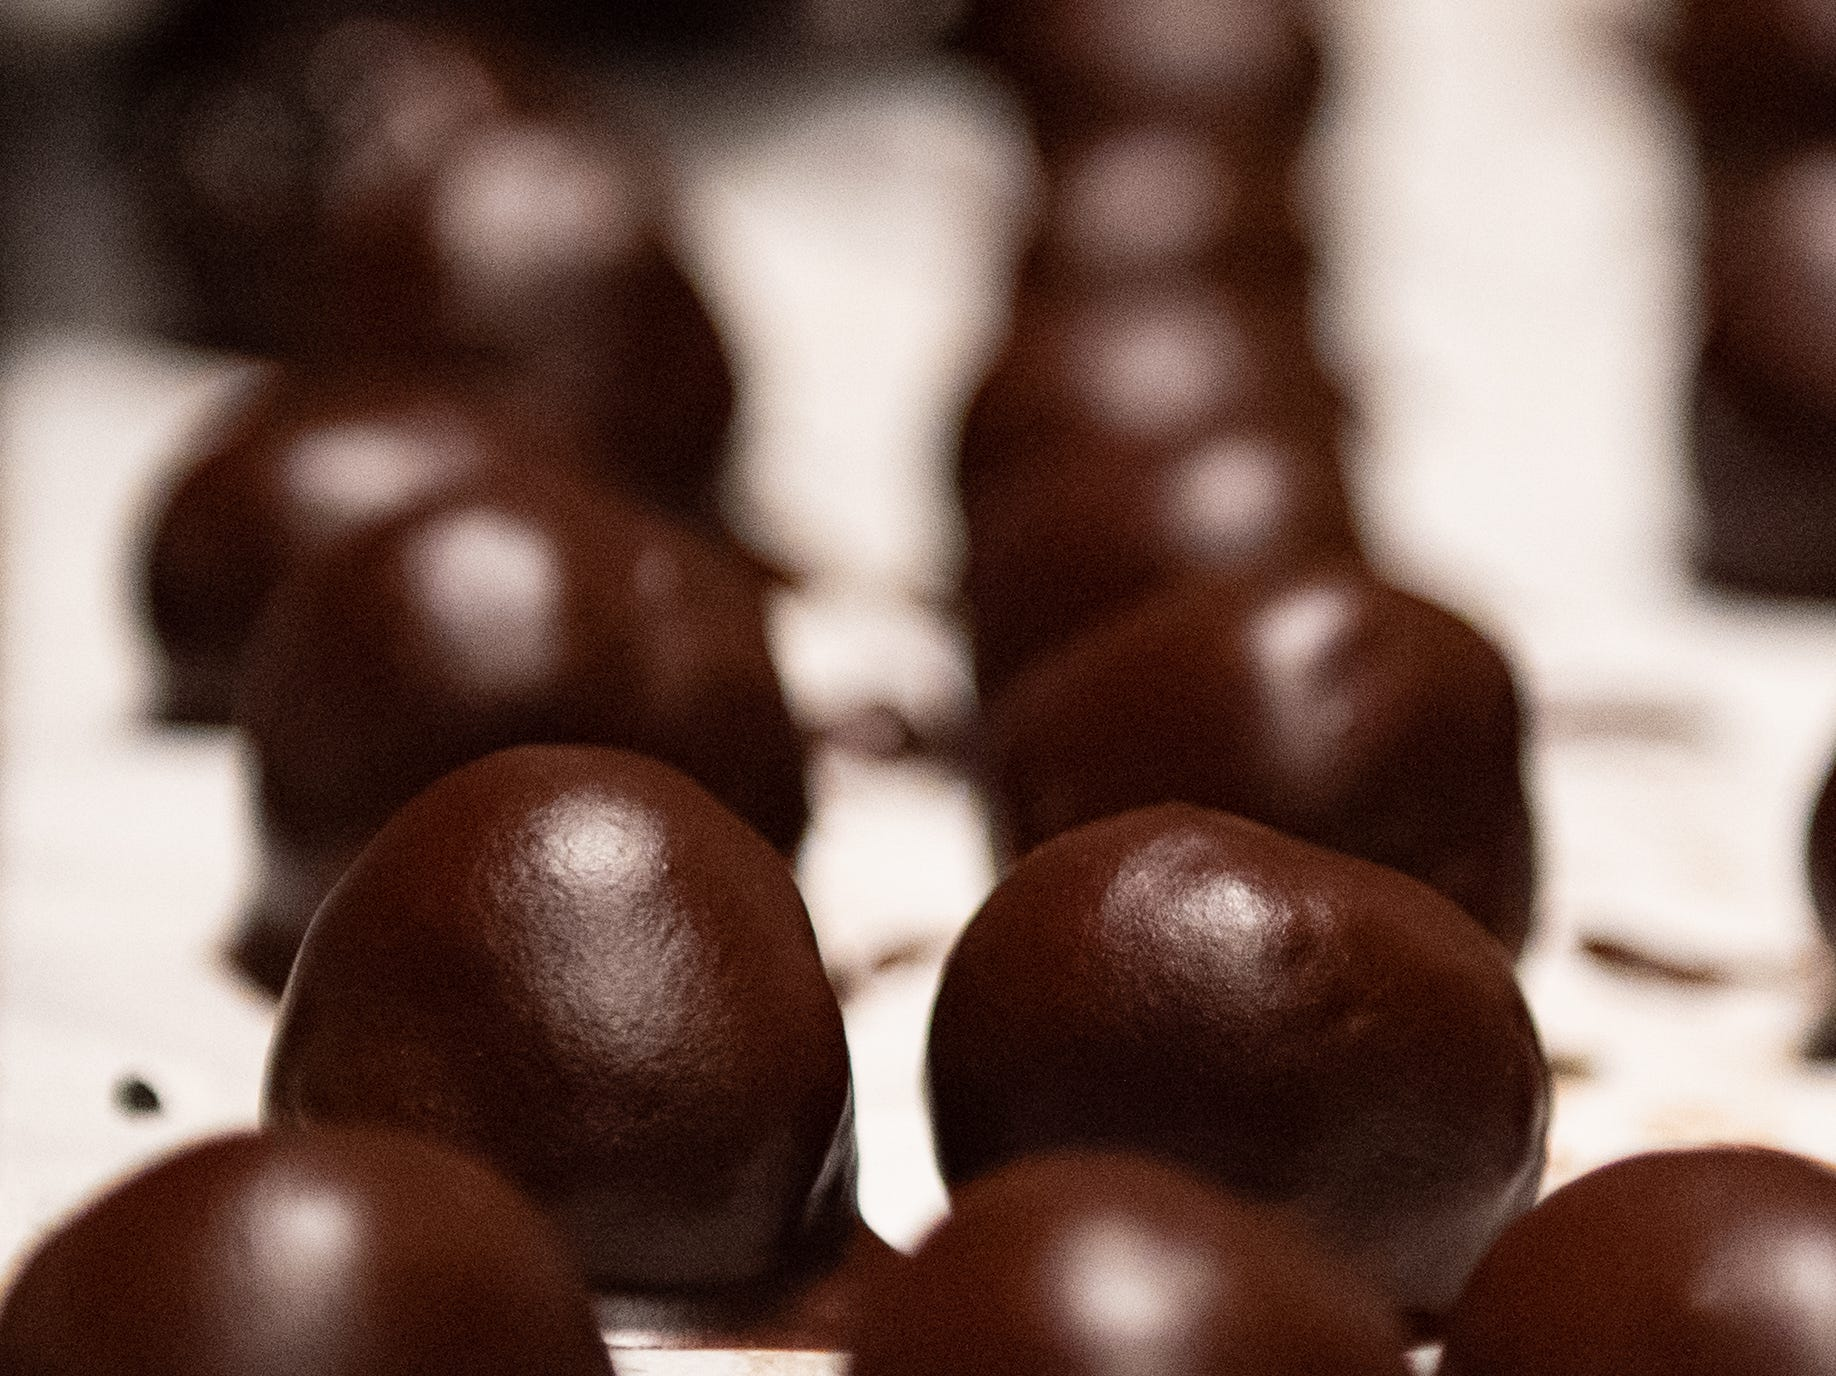 Fresh out of the oven, chocolate-covered truffle balls wait to be plated at Bube's Brewery, February 22, 2019.